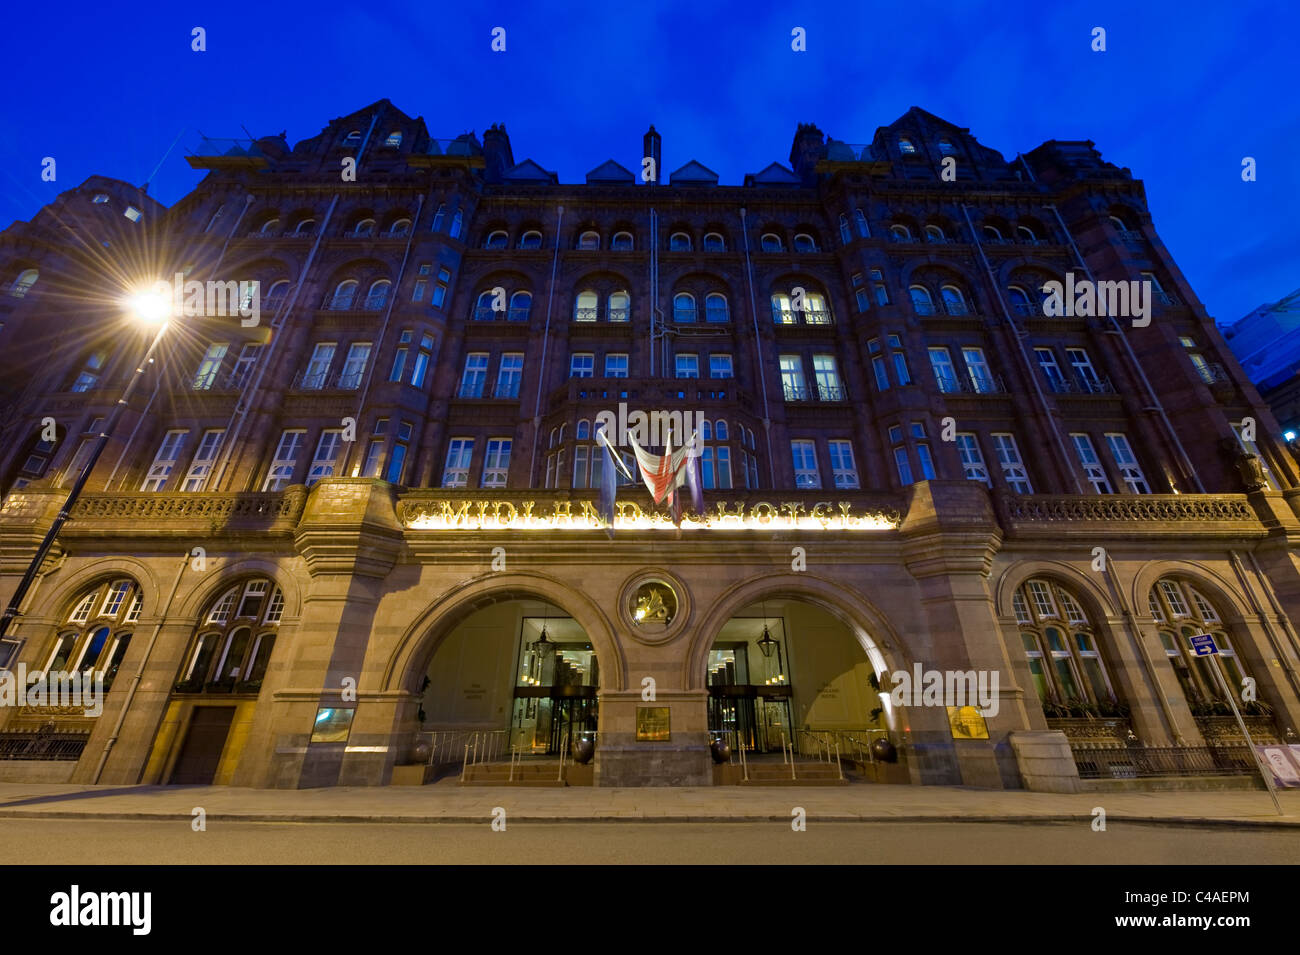 The Midland Hotel, Peter Street, Manchester. - Stock Image